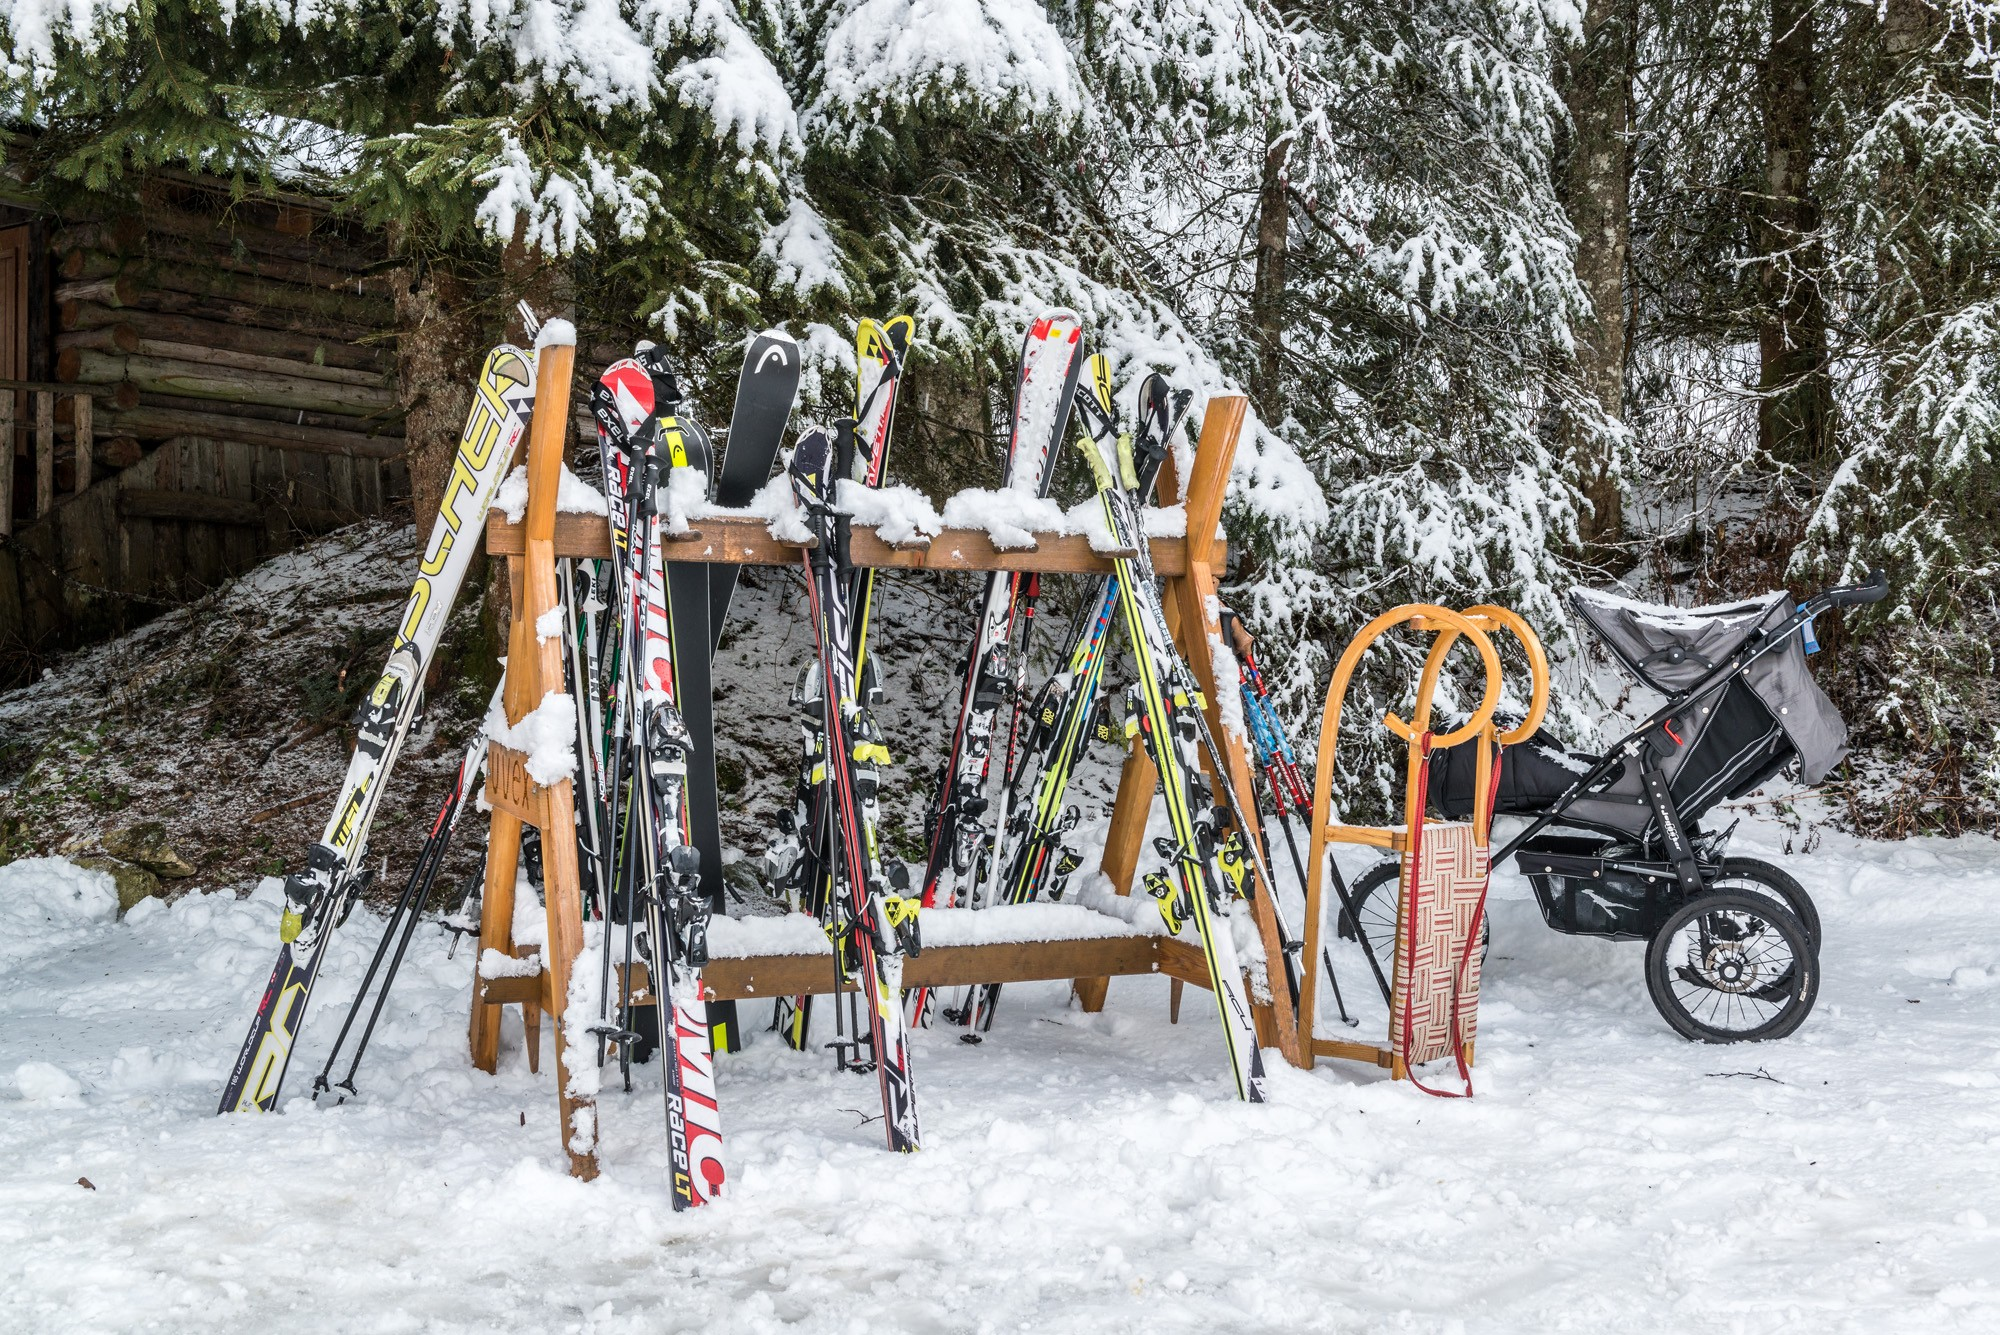 Skis in front of snowy trees © SalzburgerLand Tourismus